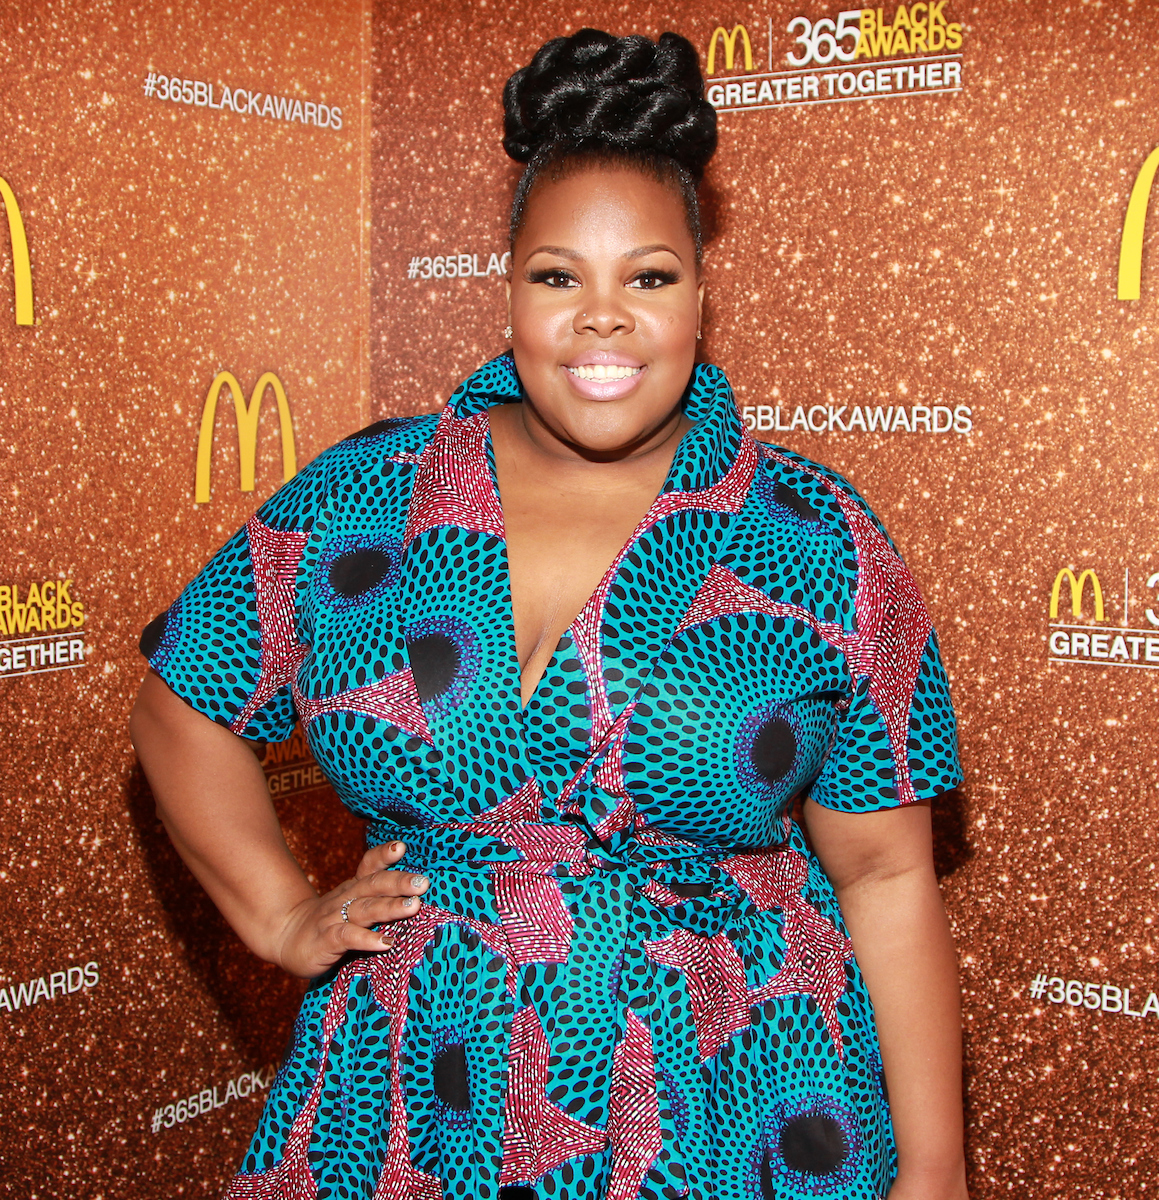 Actress and singer Amber Riley attends the 13th Annual McDonald's 365 Black Awards at the Ernest Moral Convention Center in New Orleans, LA on Friday, July 1, 2016.